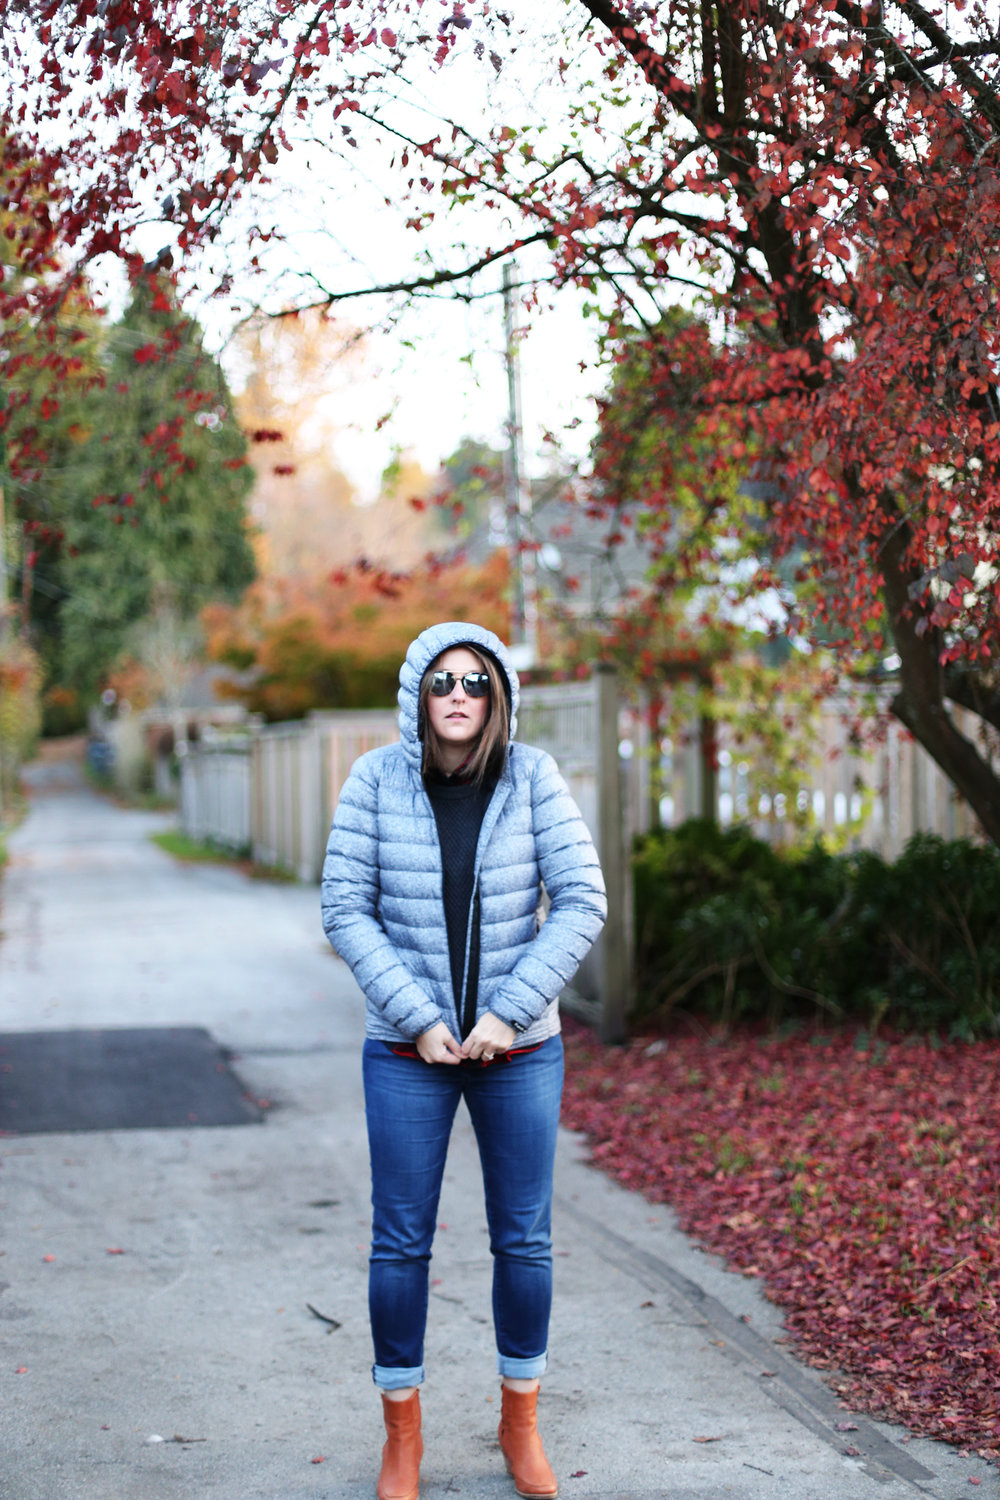 How to be warm AND stylish in the winter. I used to hate puffer jackets but now I love them!